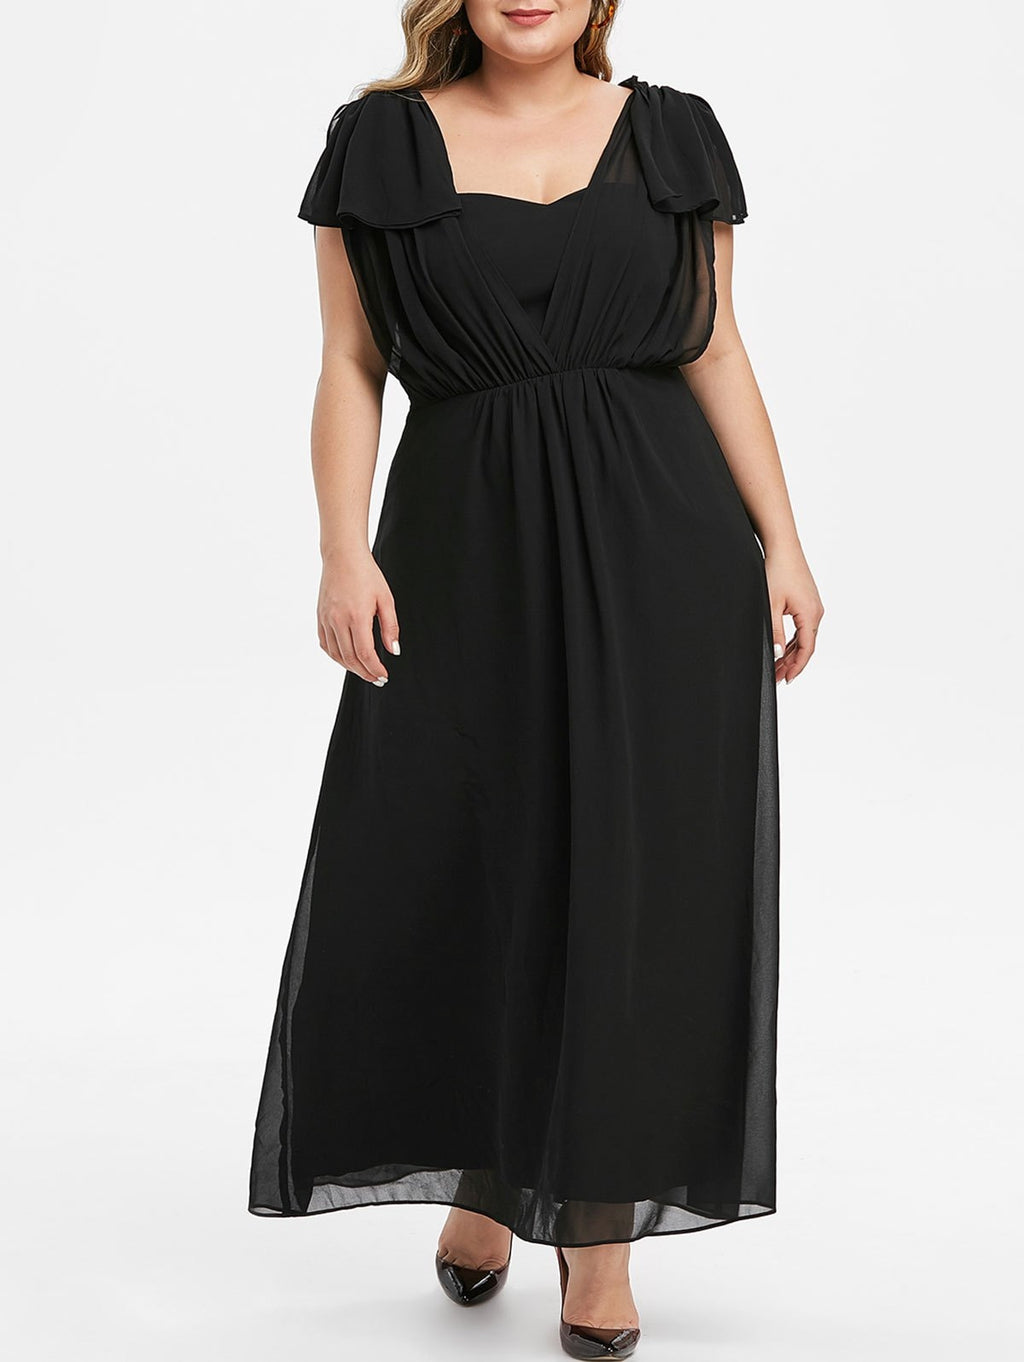 Plus Size Maxi Prom Dress